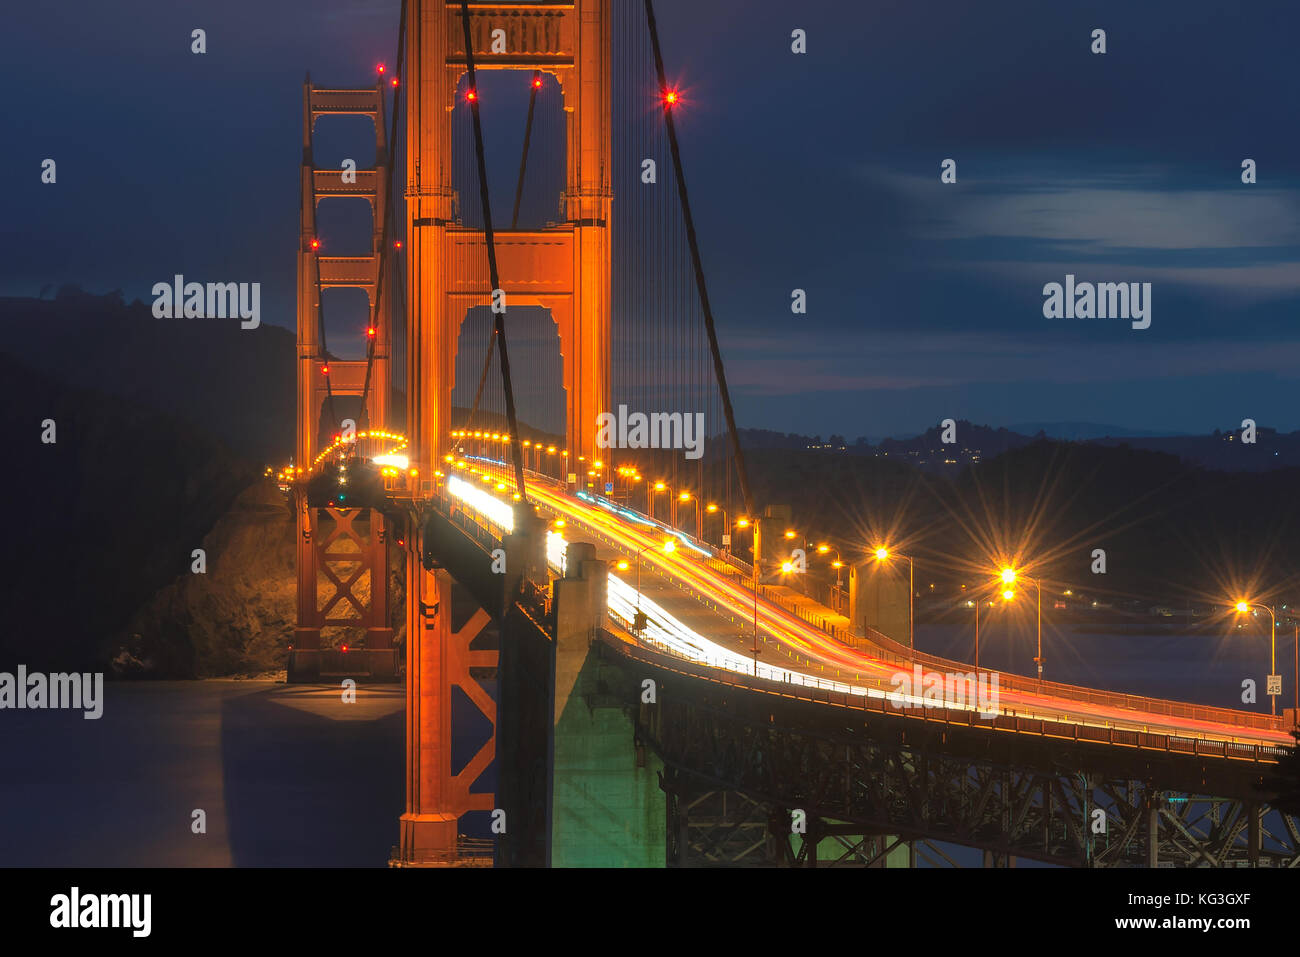 Golden Gate Bridge at night - Stock Image